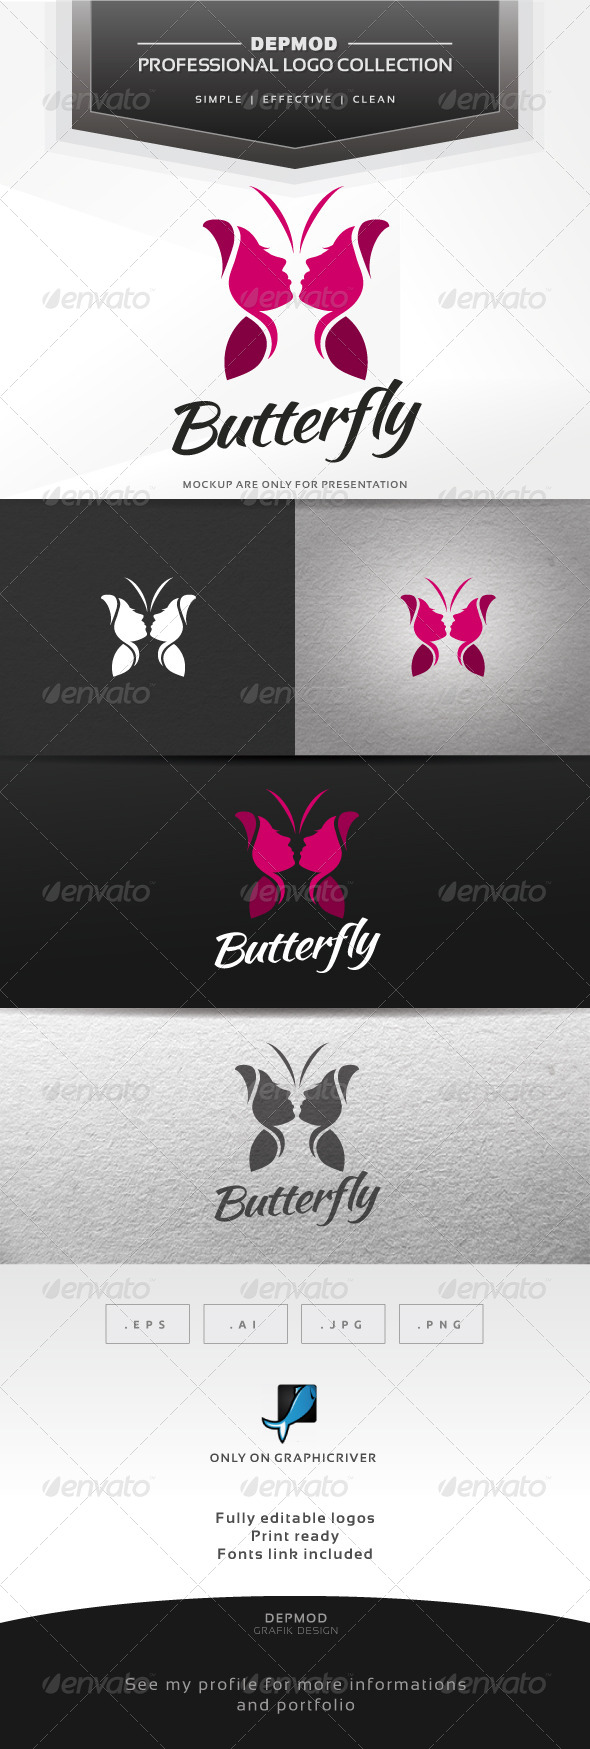 GraphicRiver Butterfly Logo 7644329